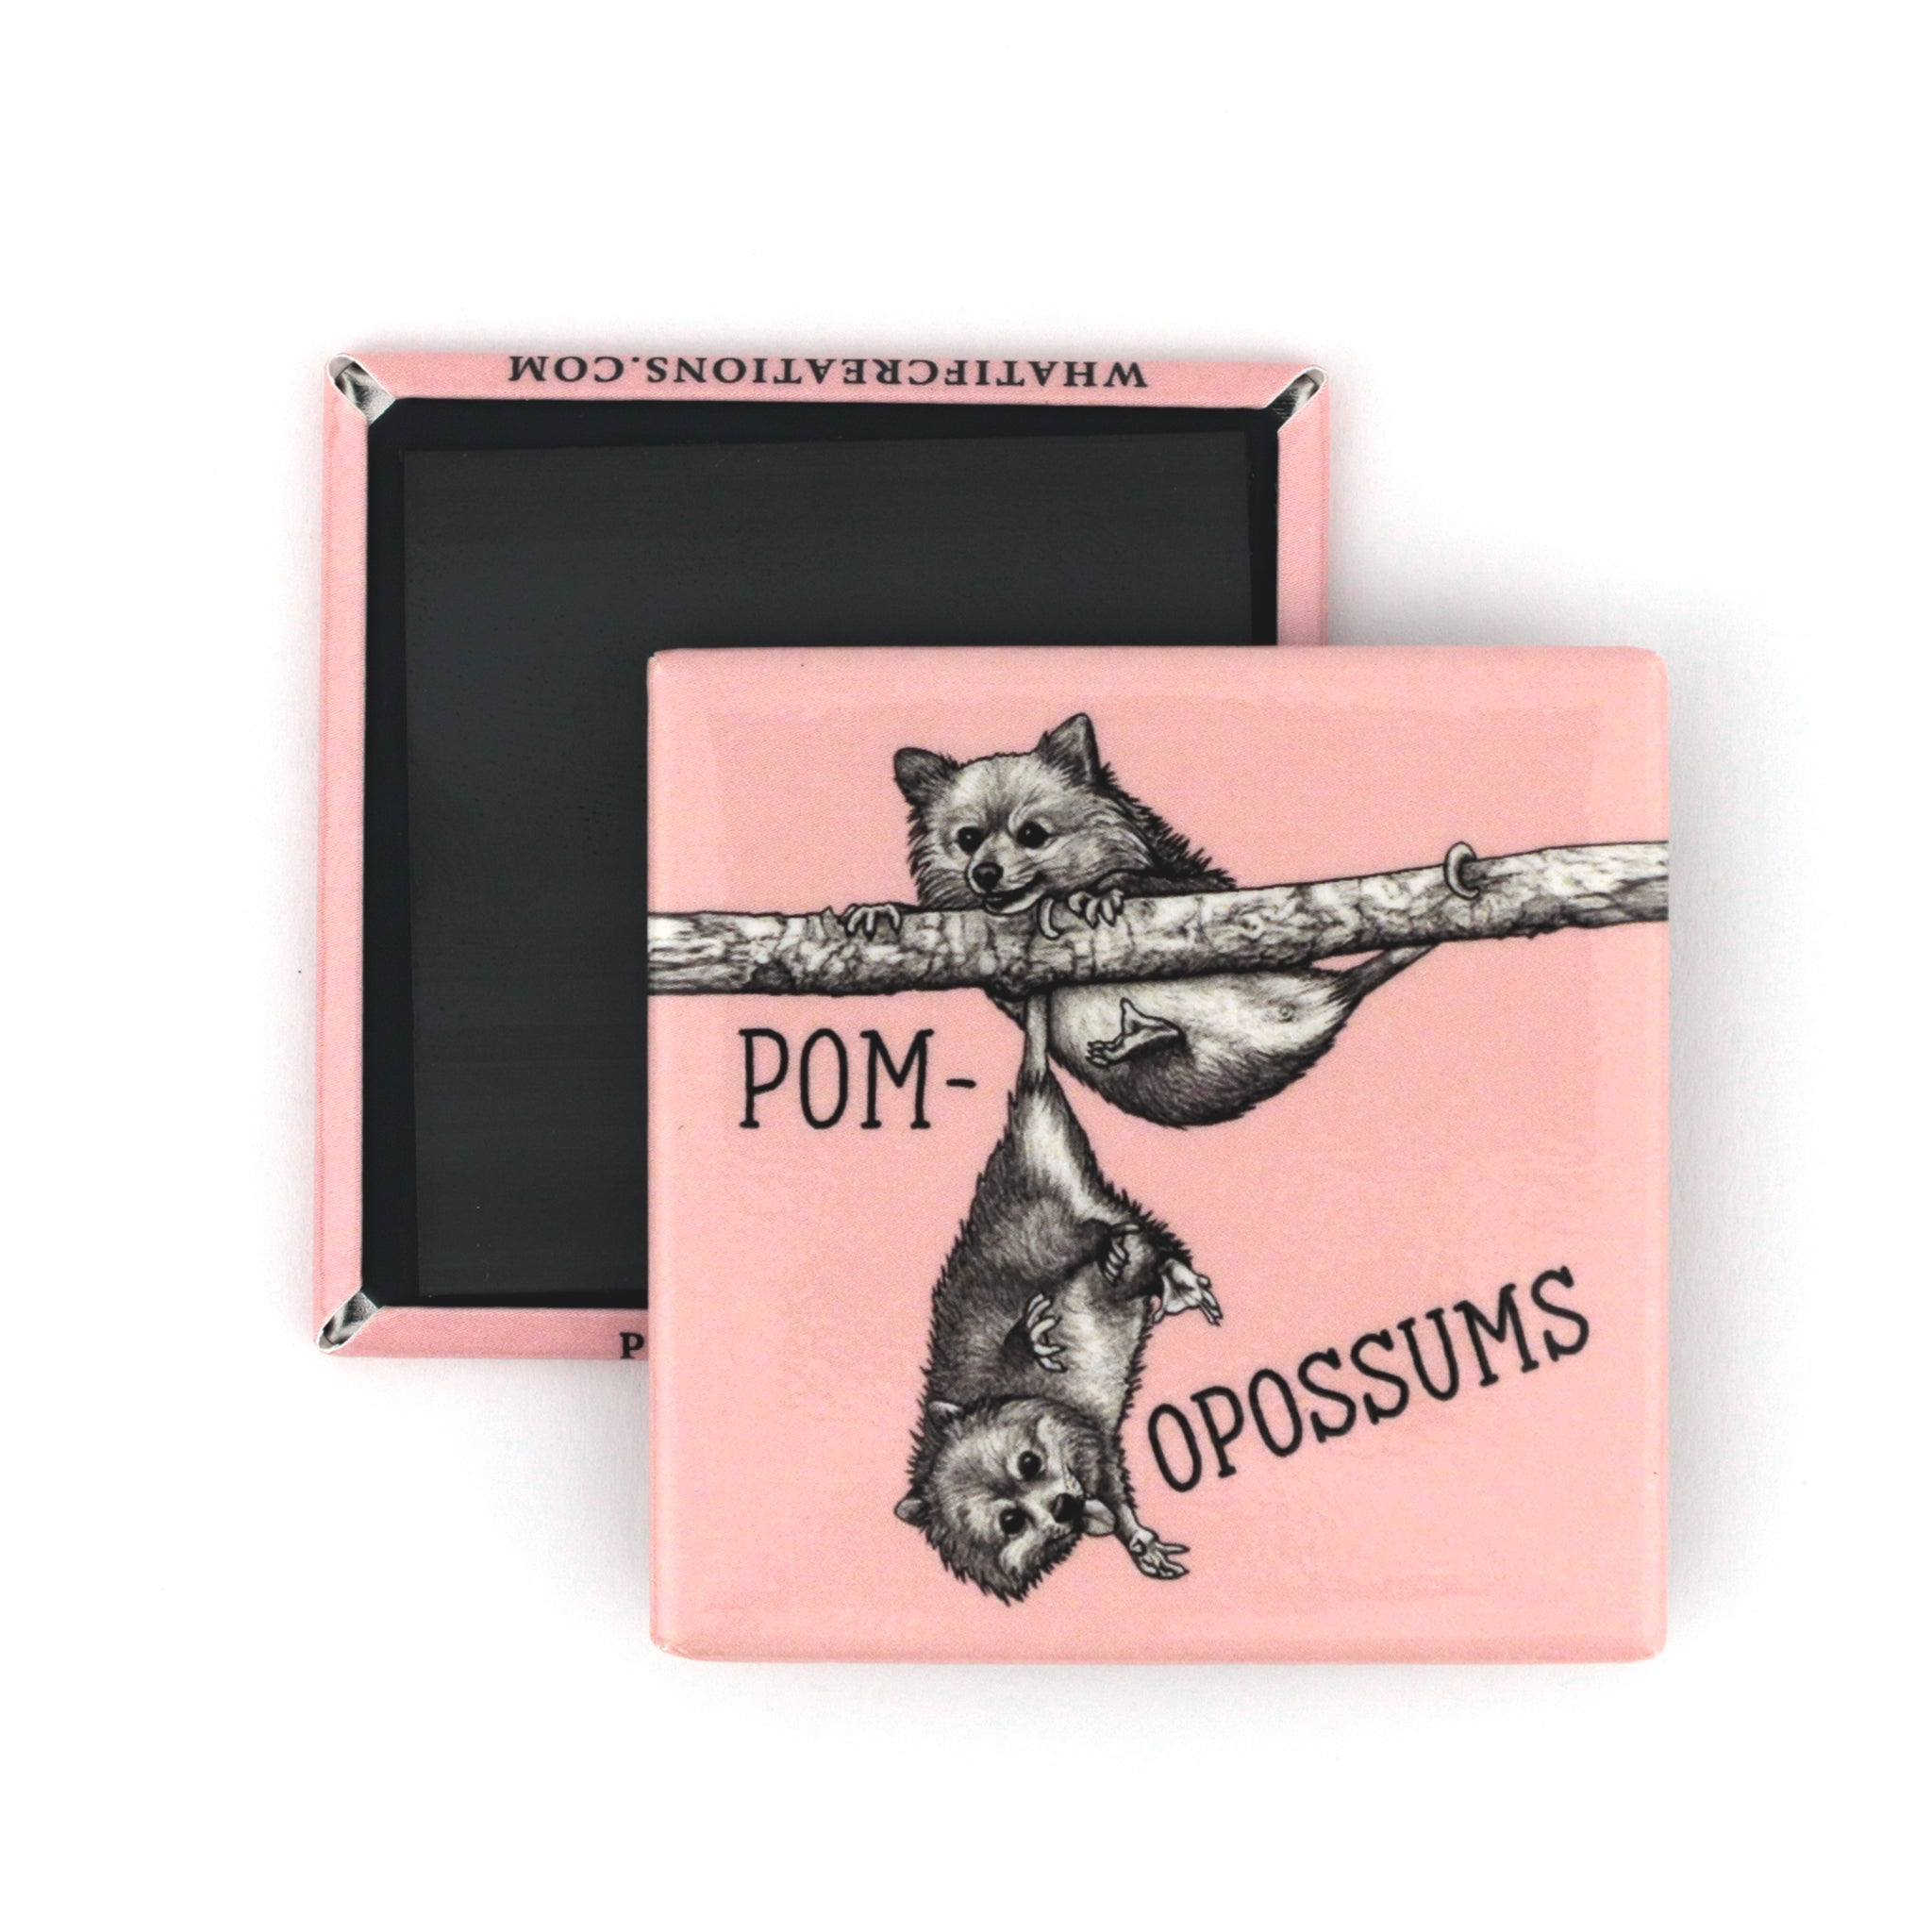 "Pomopossums 2"" Fridge Magnet"